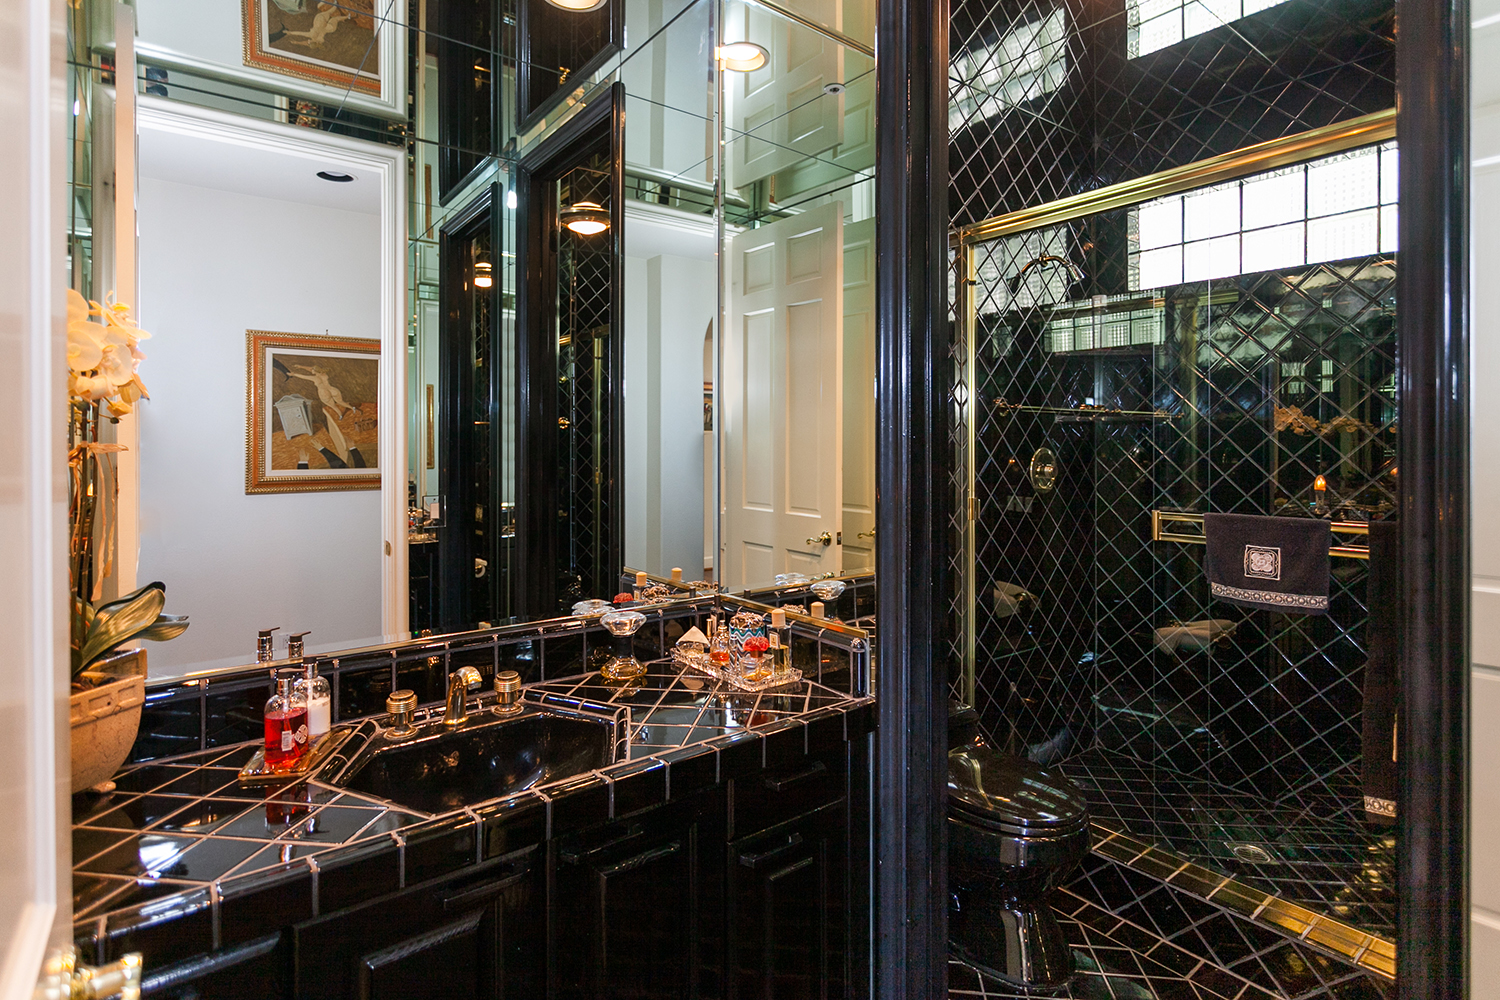 We love this black and gold bathroom!